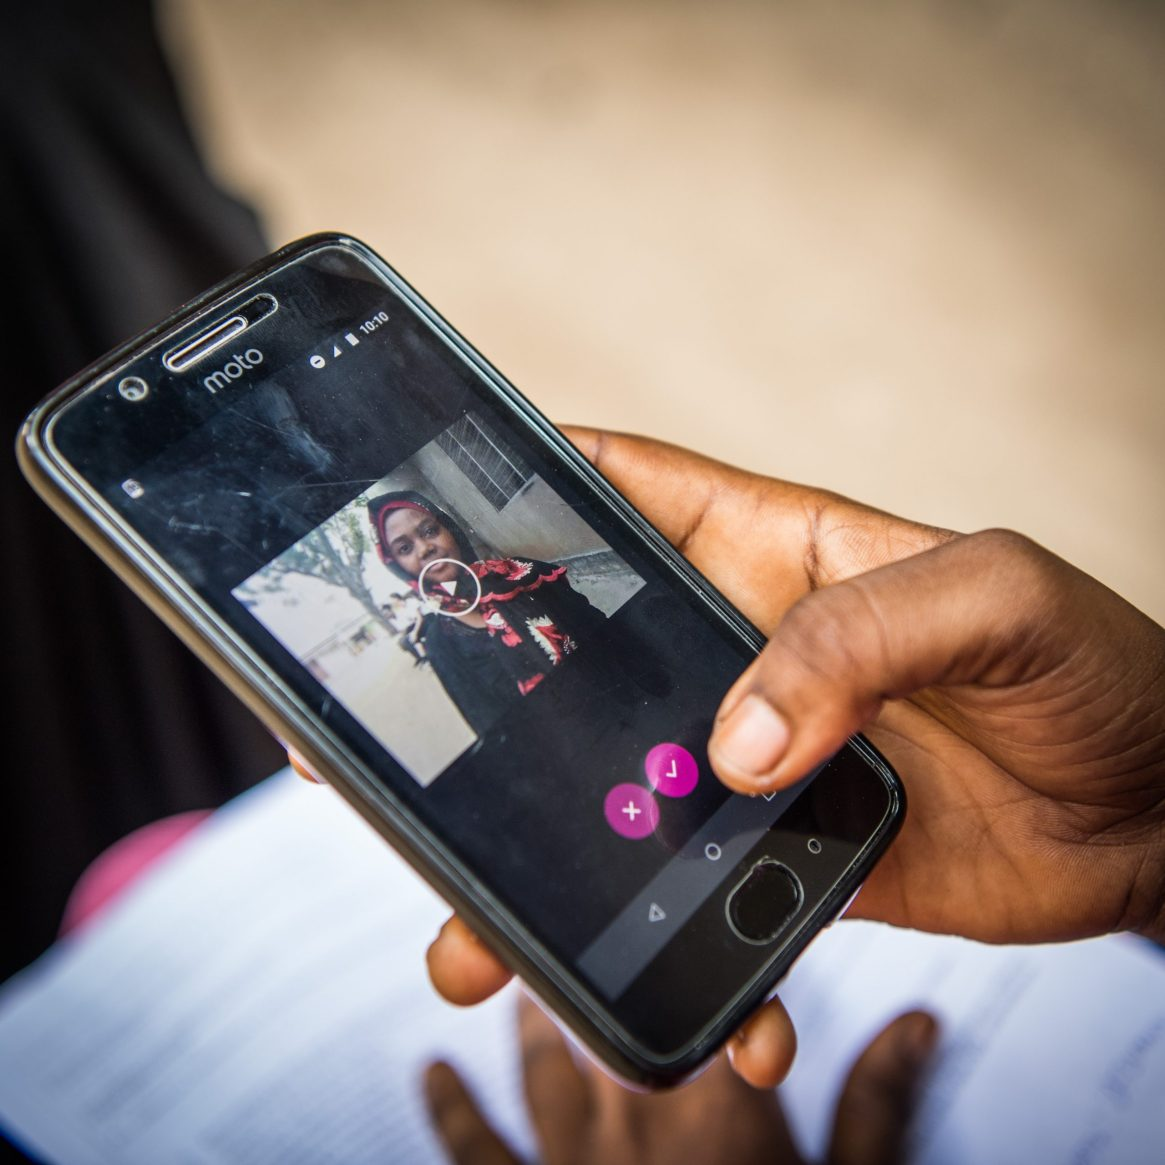 Mobile phone tech to support the mental health of girls